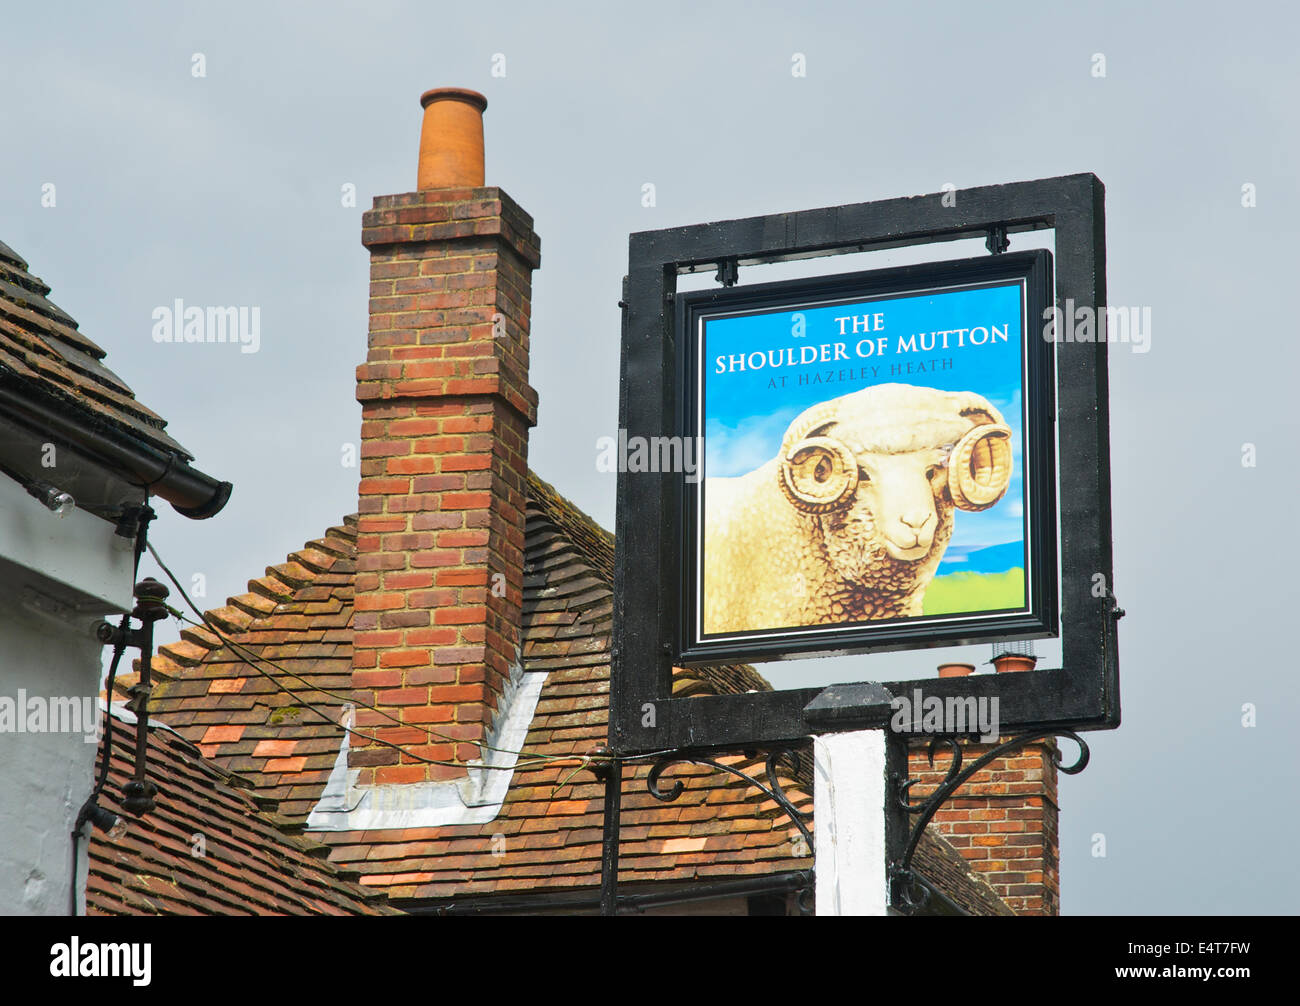 Segno per la spalla di montone a Hazeley Heath, un pub vicino Hartley Wintney, Hampshire, Inghilterra, Regno Unito Immagini Stock